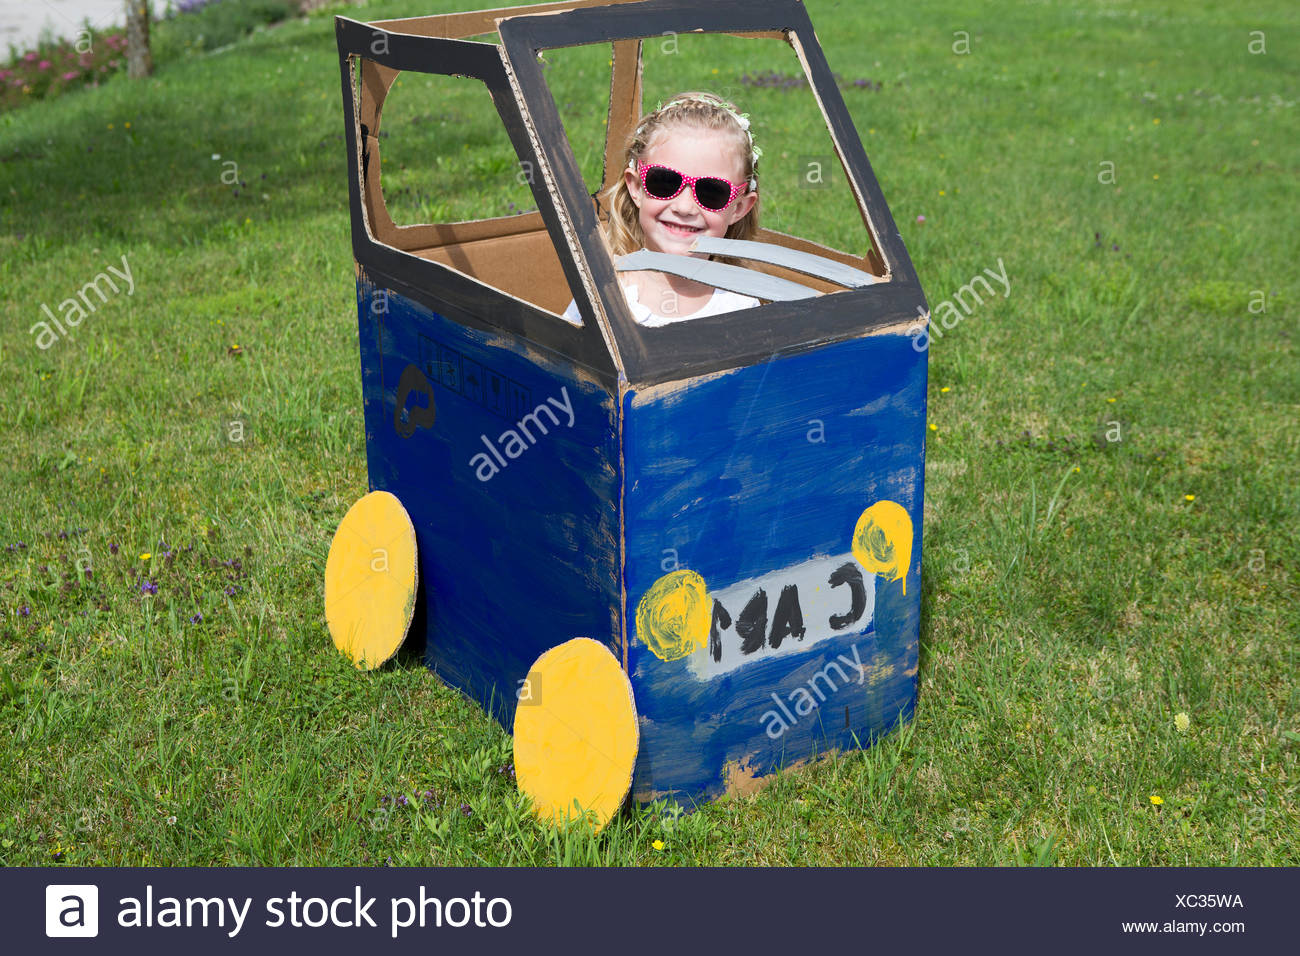 Girl playing in homemade toy car - Stock Image